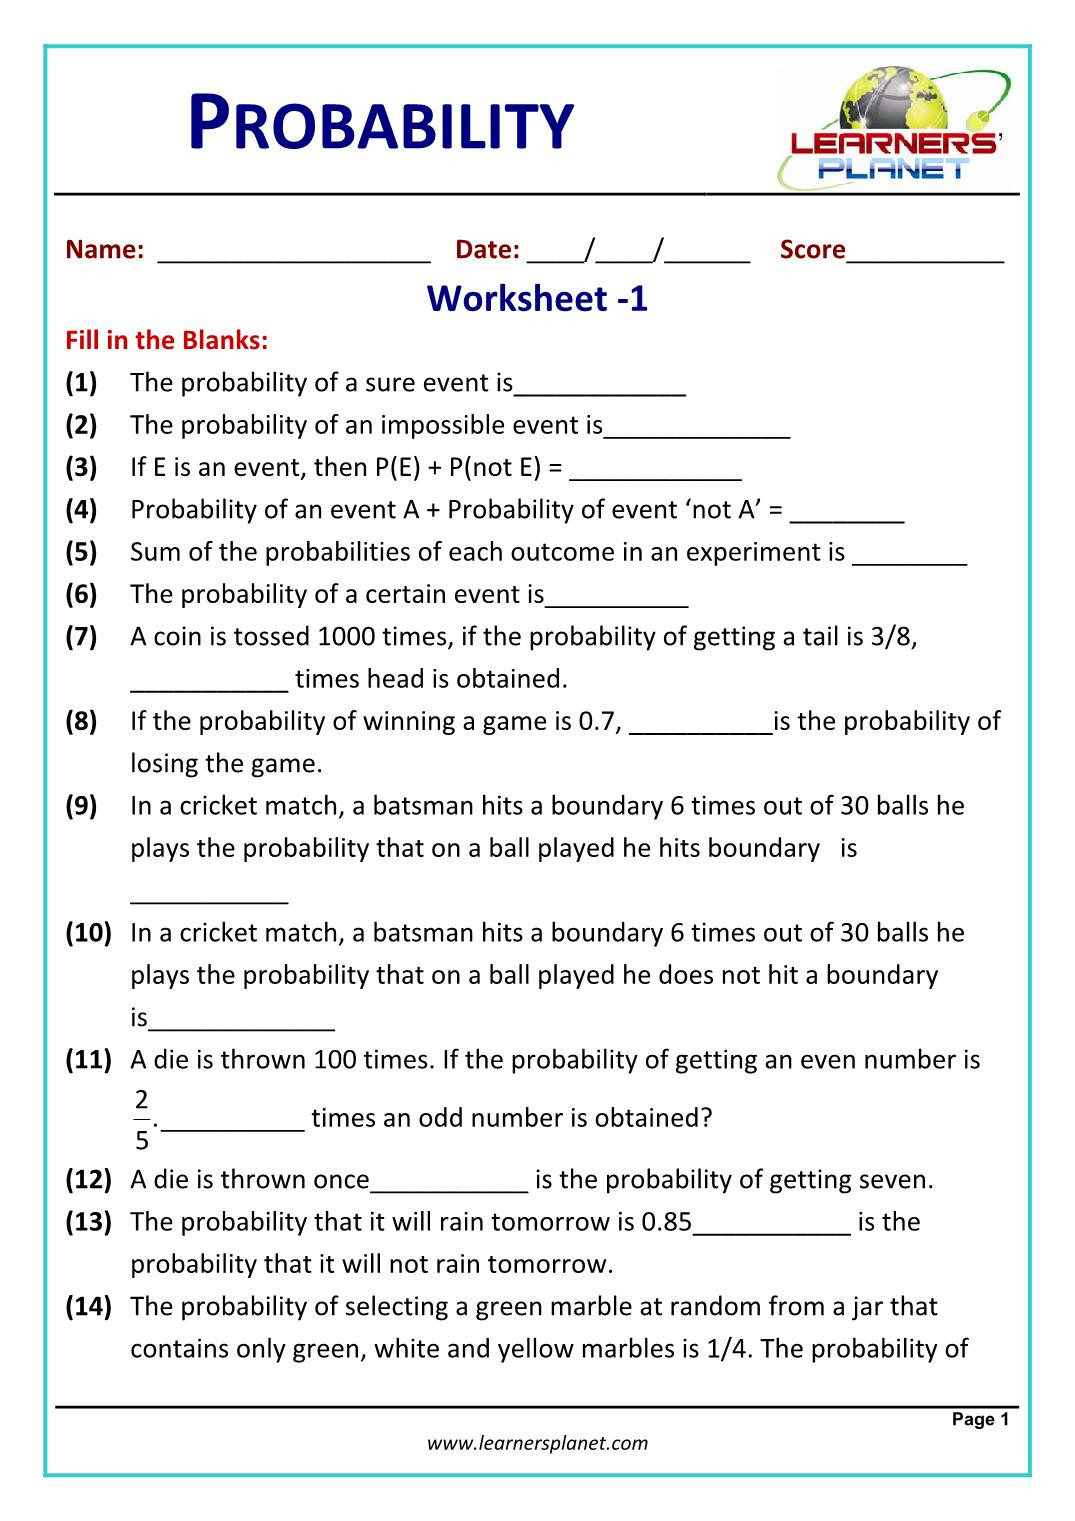 Probability Worksheets 7th Grade Pdf Rounding Decimals Green Eggs and Ham Worksheets Probability